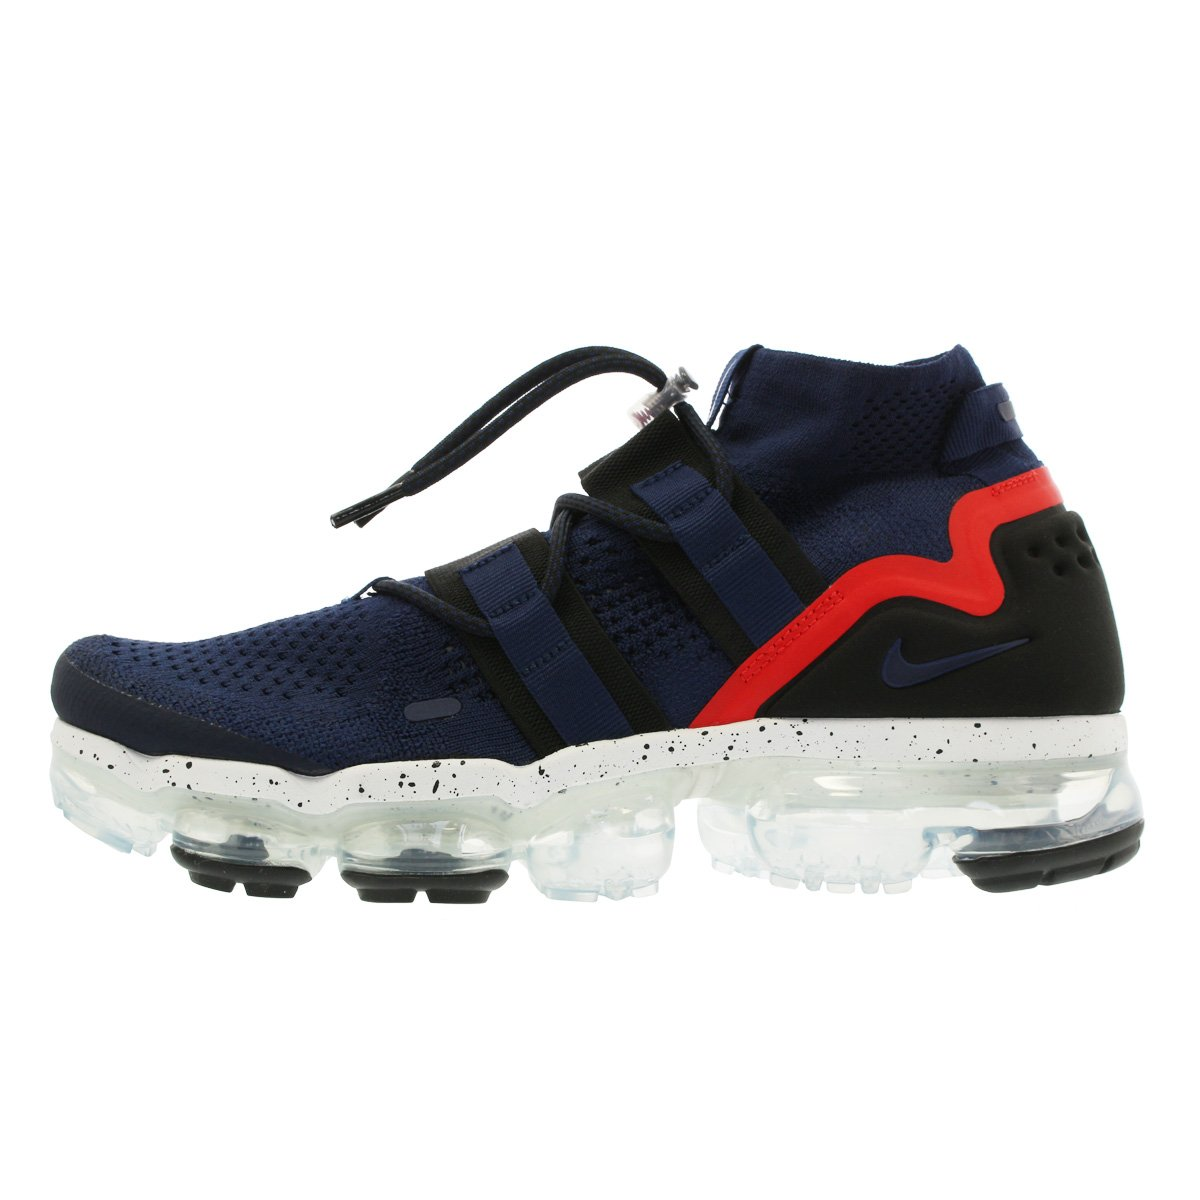 buy online 413e8 d1d55 Amazon.com | Nike AIR Vapormax Flyknit Utility New England ...